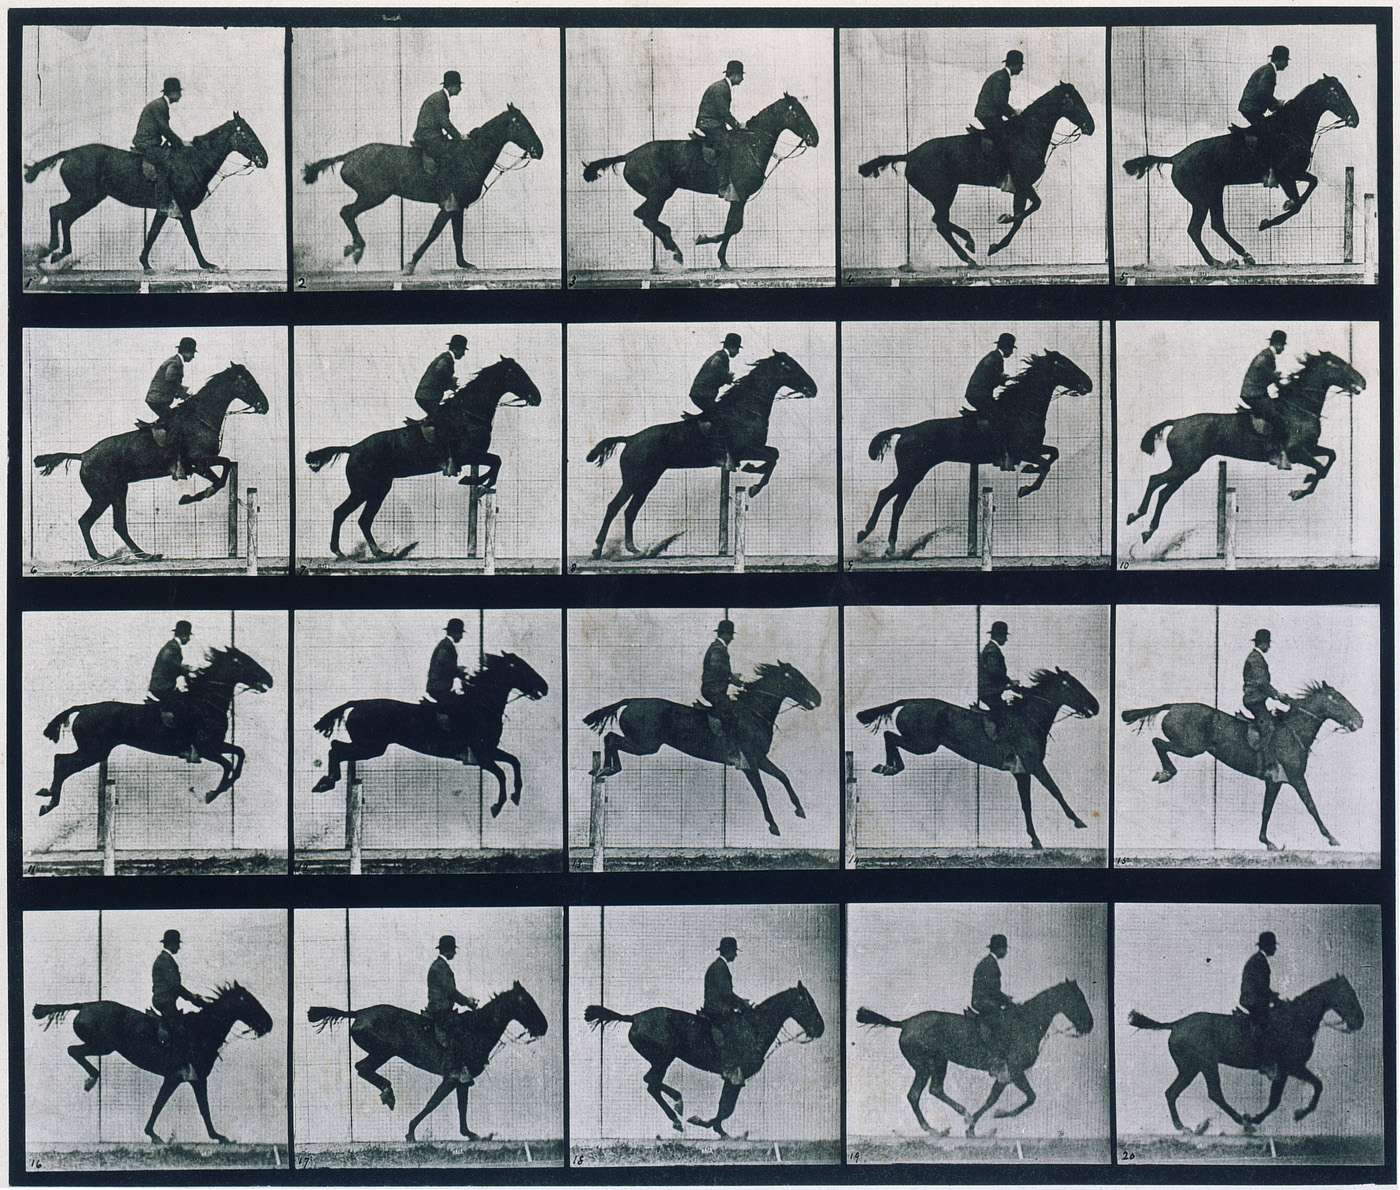 Motion Picture Movies (1920's)